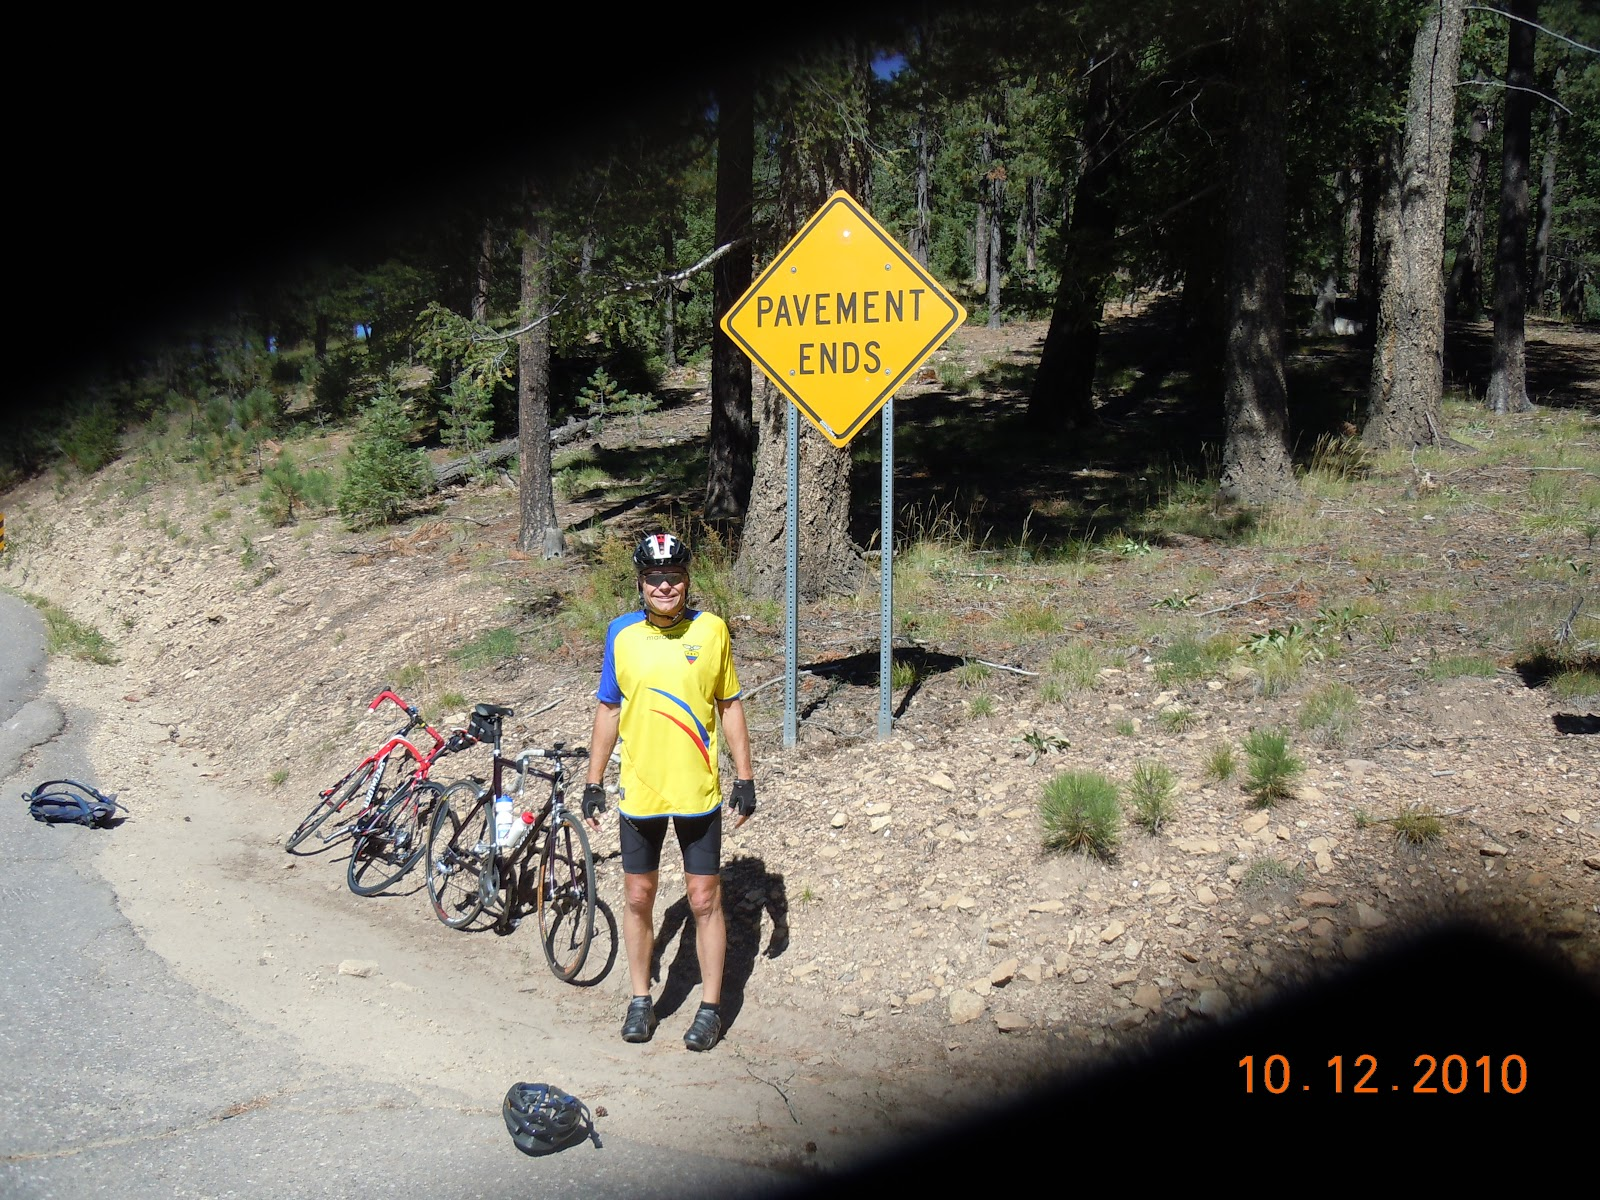 End of Mt. Graham bicycle ride - cyclist, bicycle and road Pavement Ends sign.